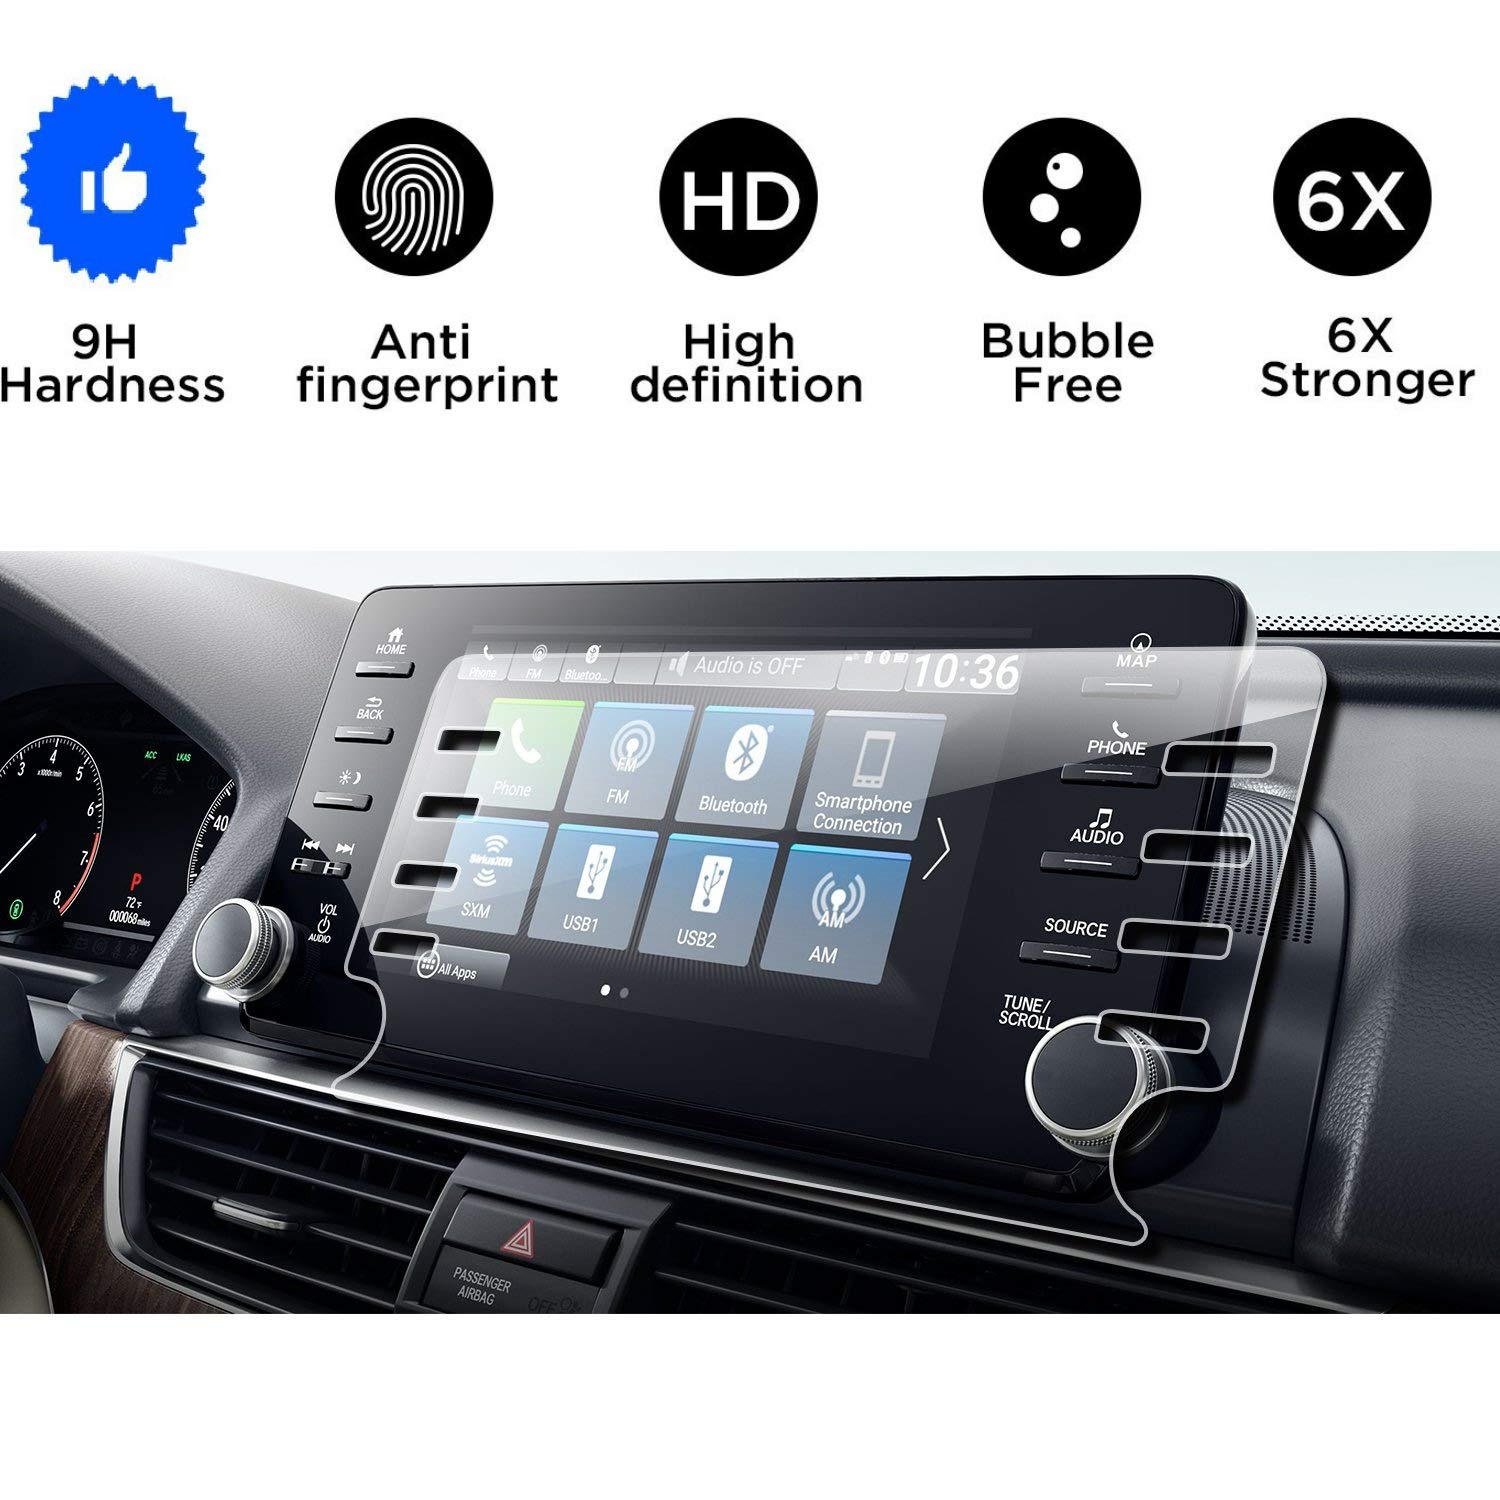 Wonderfulhz Tempered Glass Screen Protector Compatible With 2018 2019 Accord,9H Hardness,High Definition,Protecting Honda Accord 8'' Car Center Touch Screen